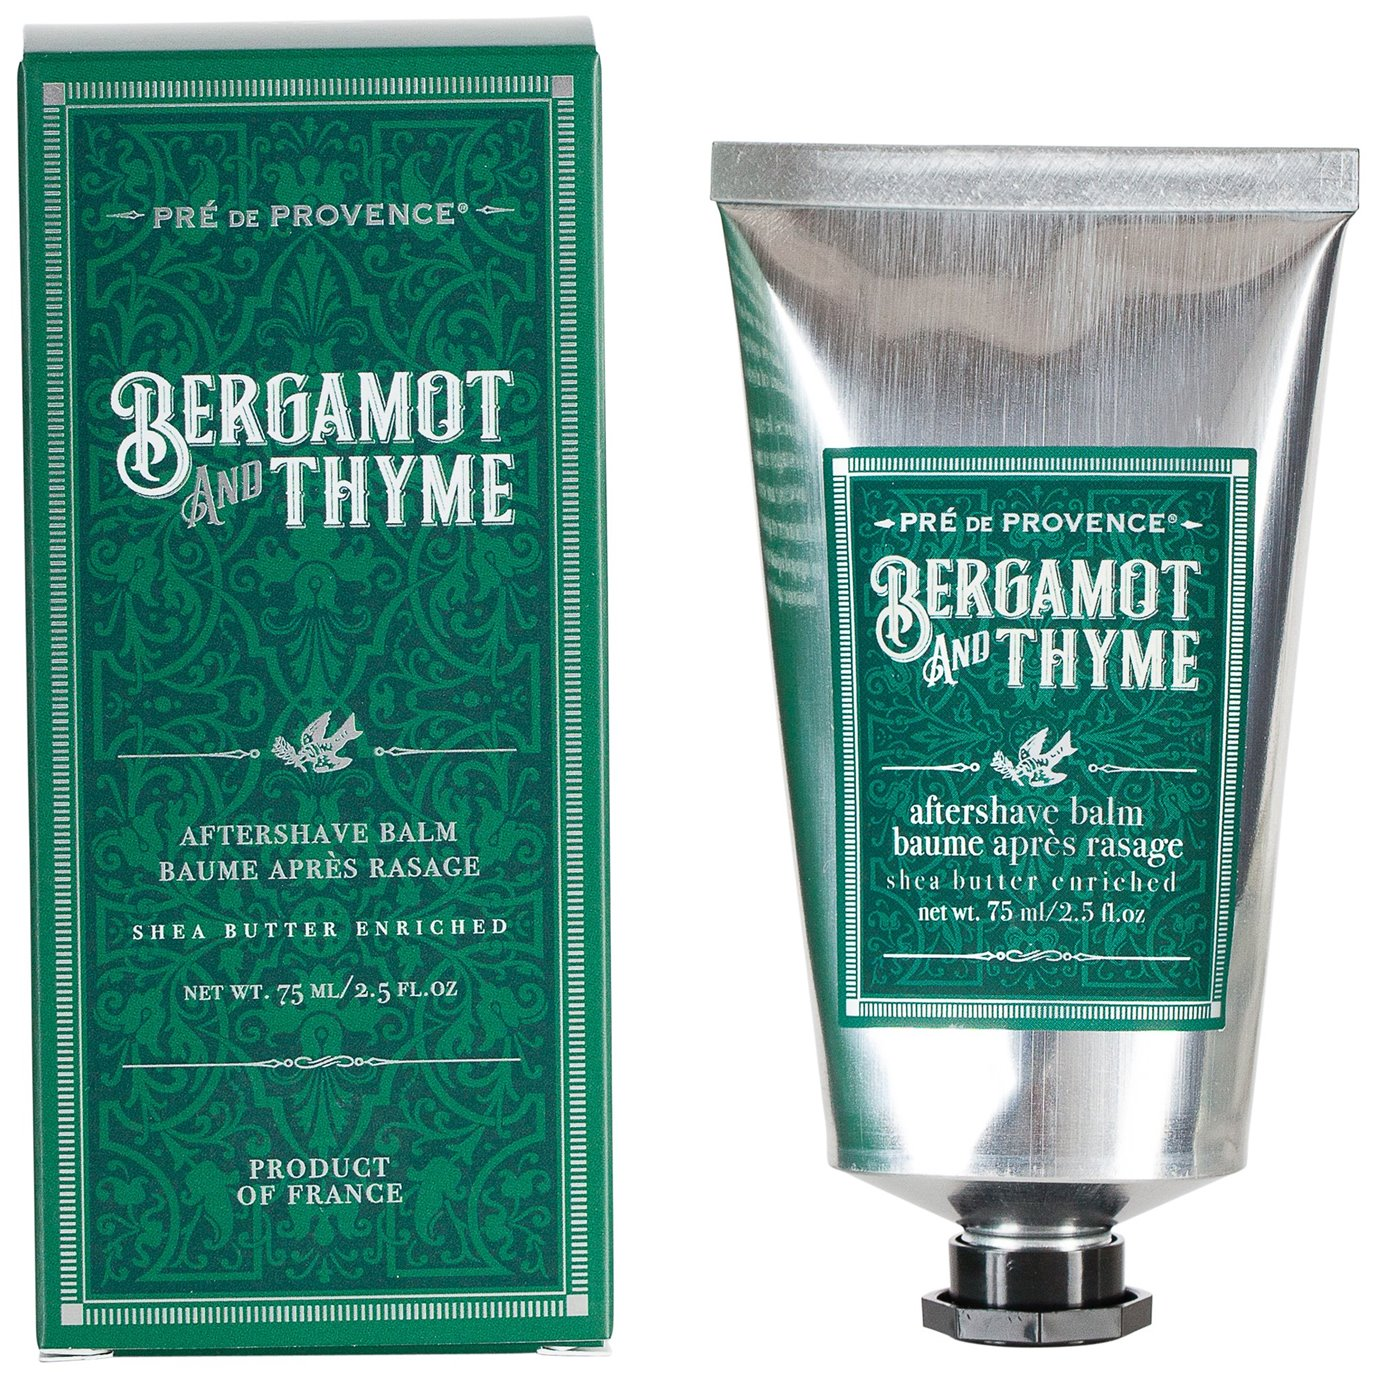 Pre de Provence Shea Butter Enriched Bergamot and Thyme After Shave Balm